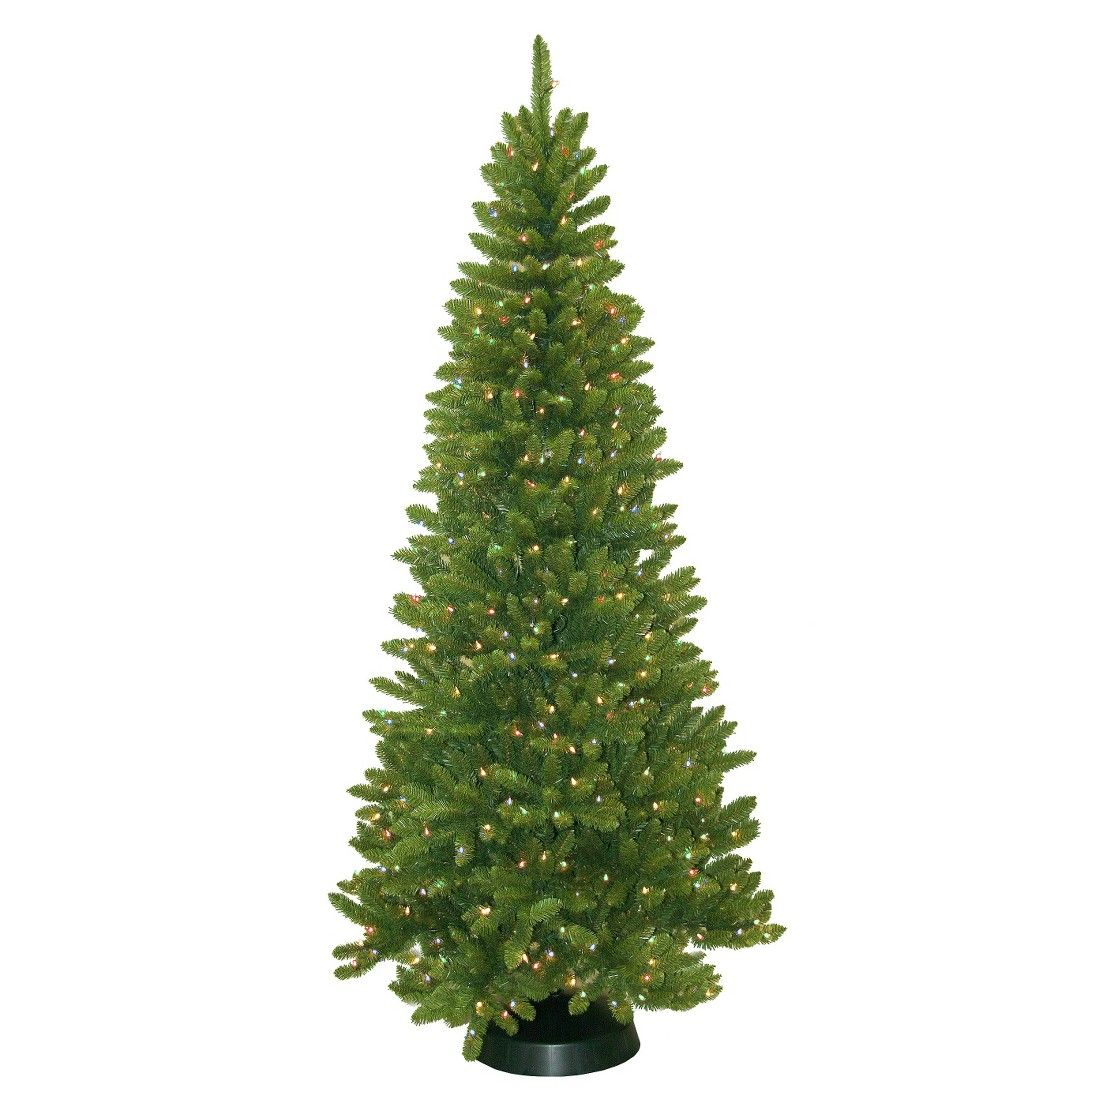 7 X 45 Cheyenne Fir Pre Lit Christmas Tree M Target Artifical Christmas Tree Christmas Tree Clear Lights Pre Lit Christmas Tree